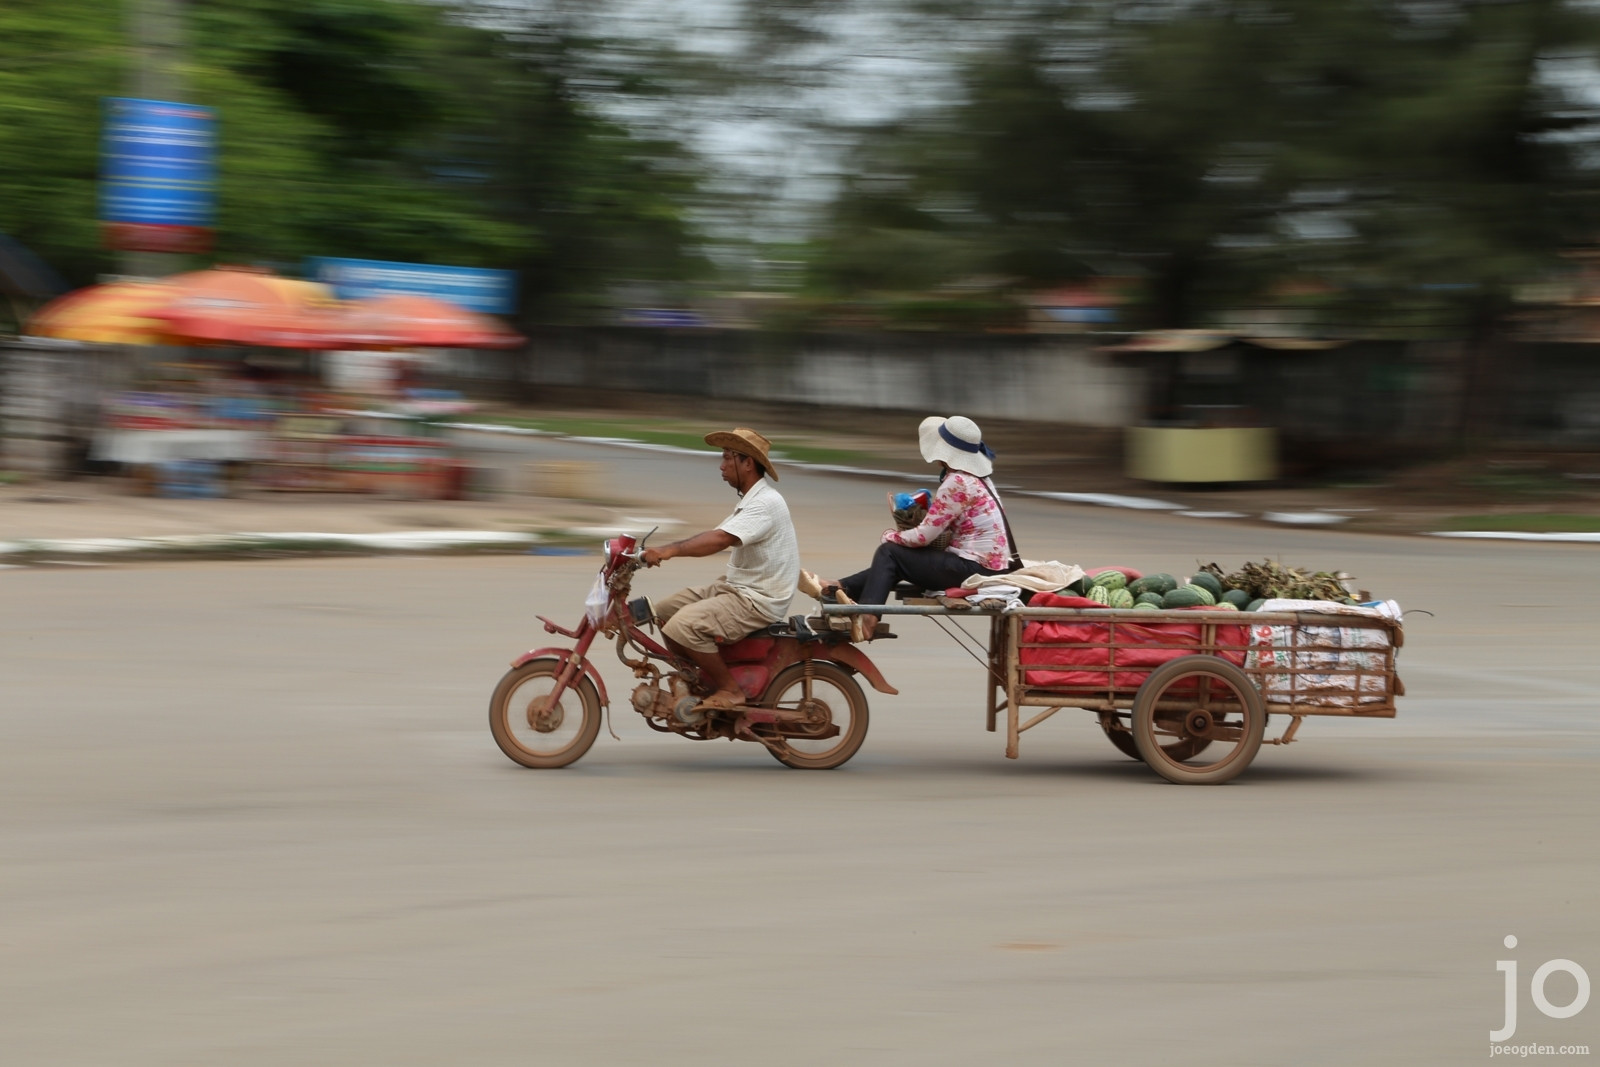 Motorbike with trailer in Kampot, Cambodia